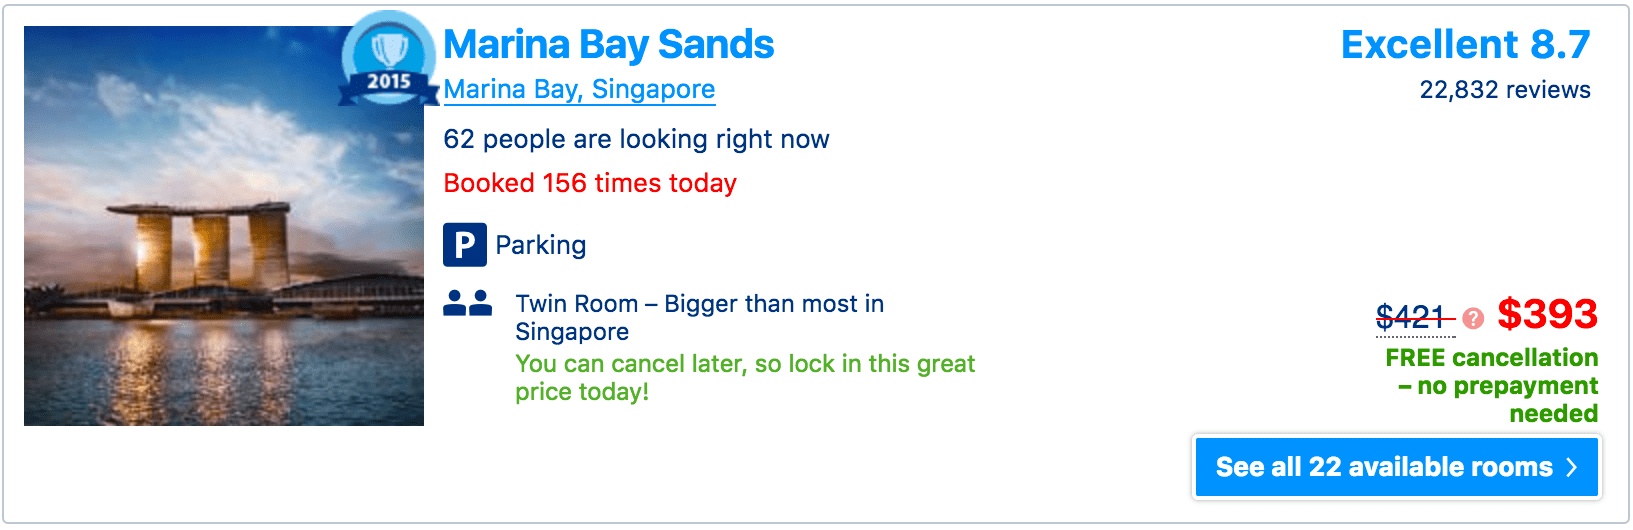 Trip Advisor screen showing the price of a room at the Marina Bay Sands to be $397